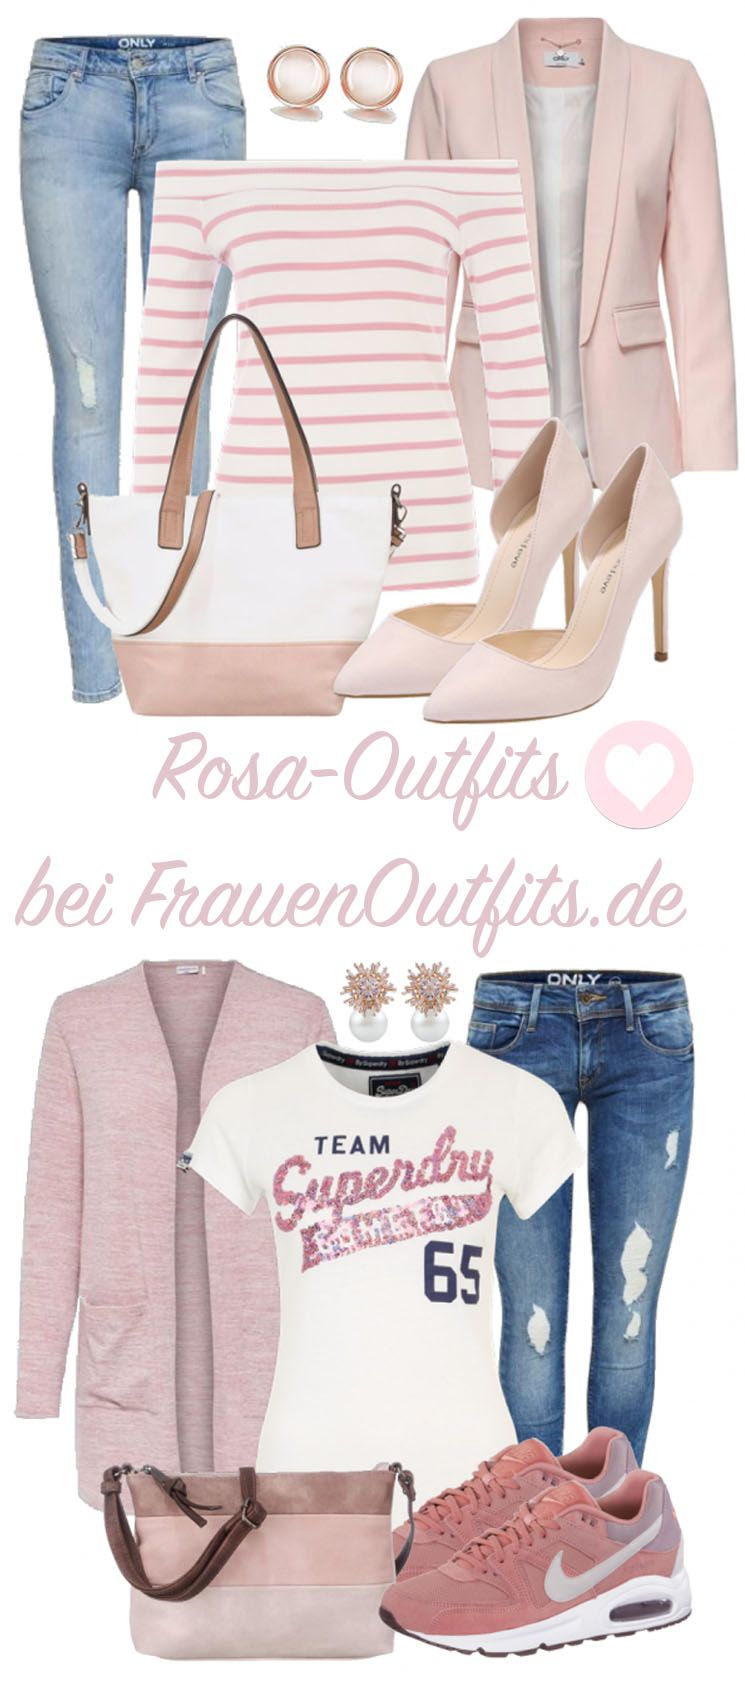 Zwei stylische Frühlings Outfits in der Trendfarbe Rosa. Ob